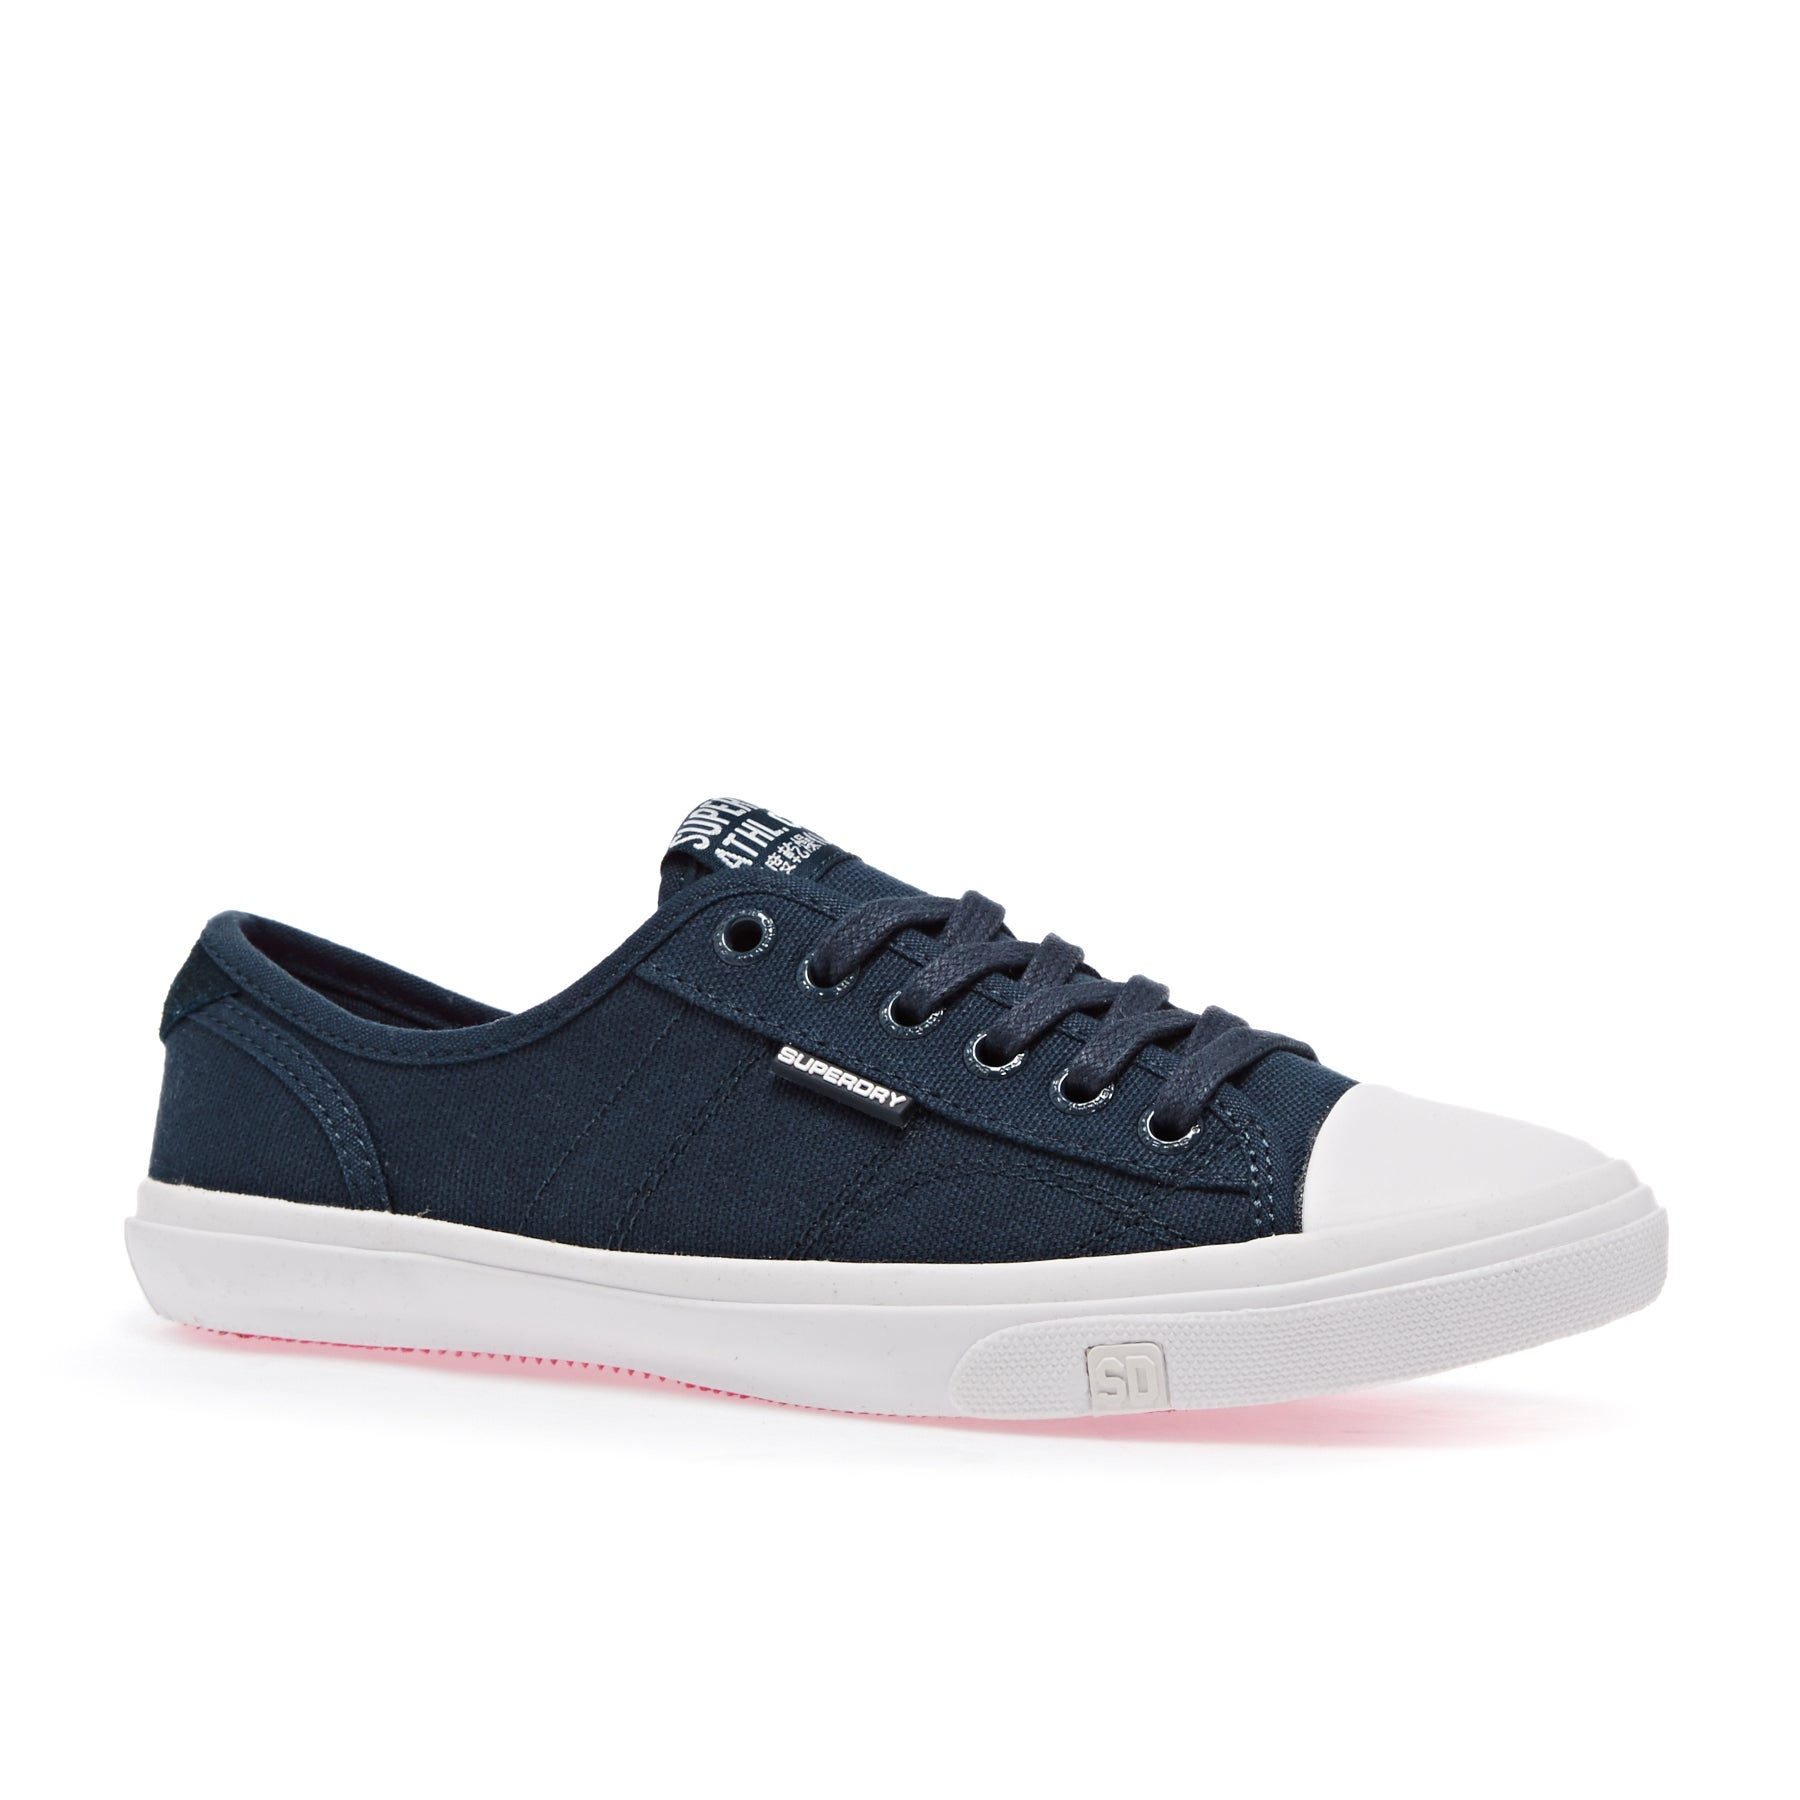 Chaussures Femme Superdry Low Pro - Navy